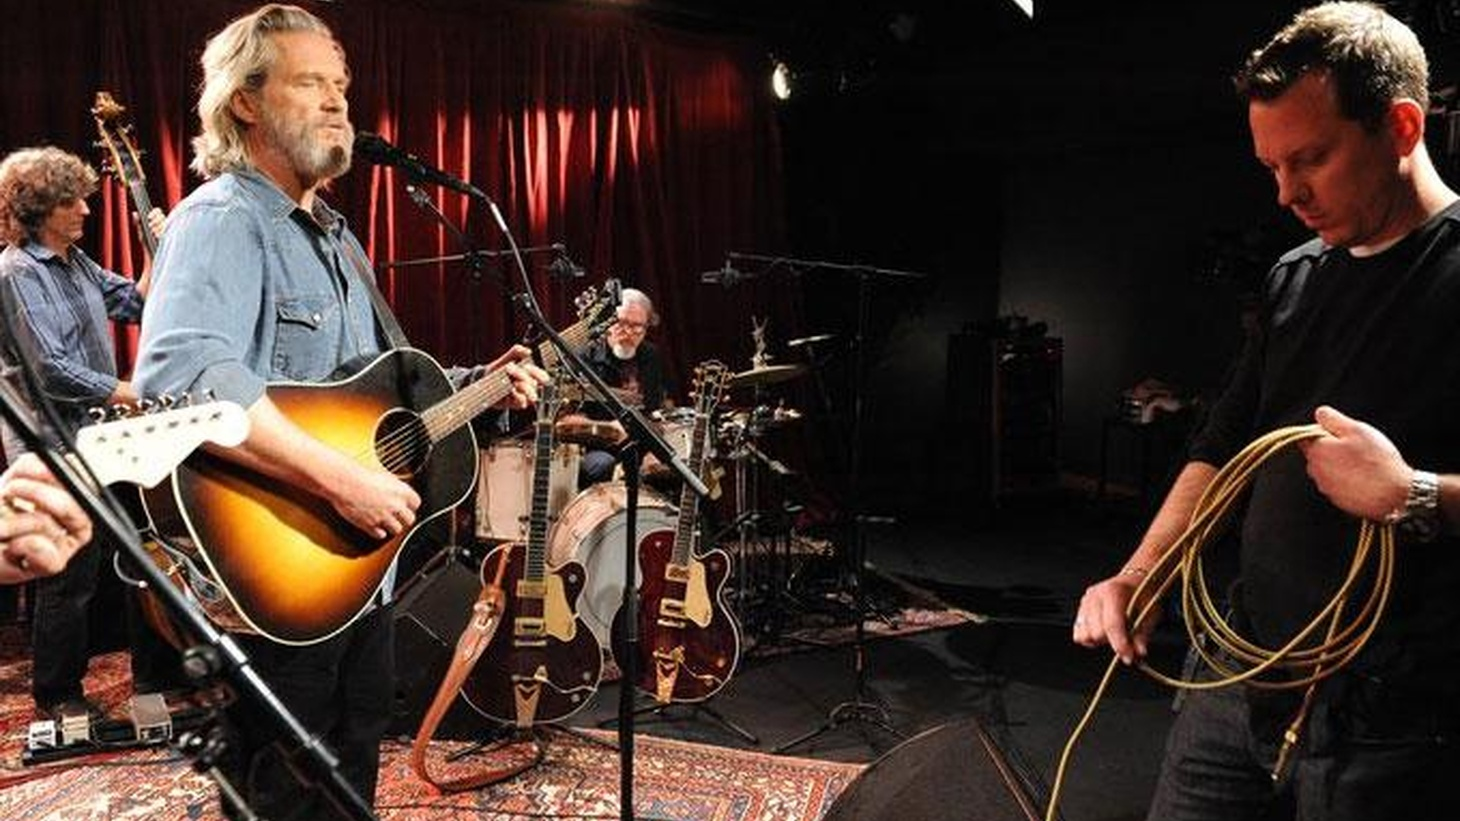 Oscar-winner Jeff Bridges wasn't just acting when he starred in Crazy Heart. He's been playing guitar for years and would have chosen a musical path if...